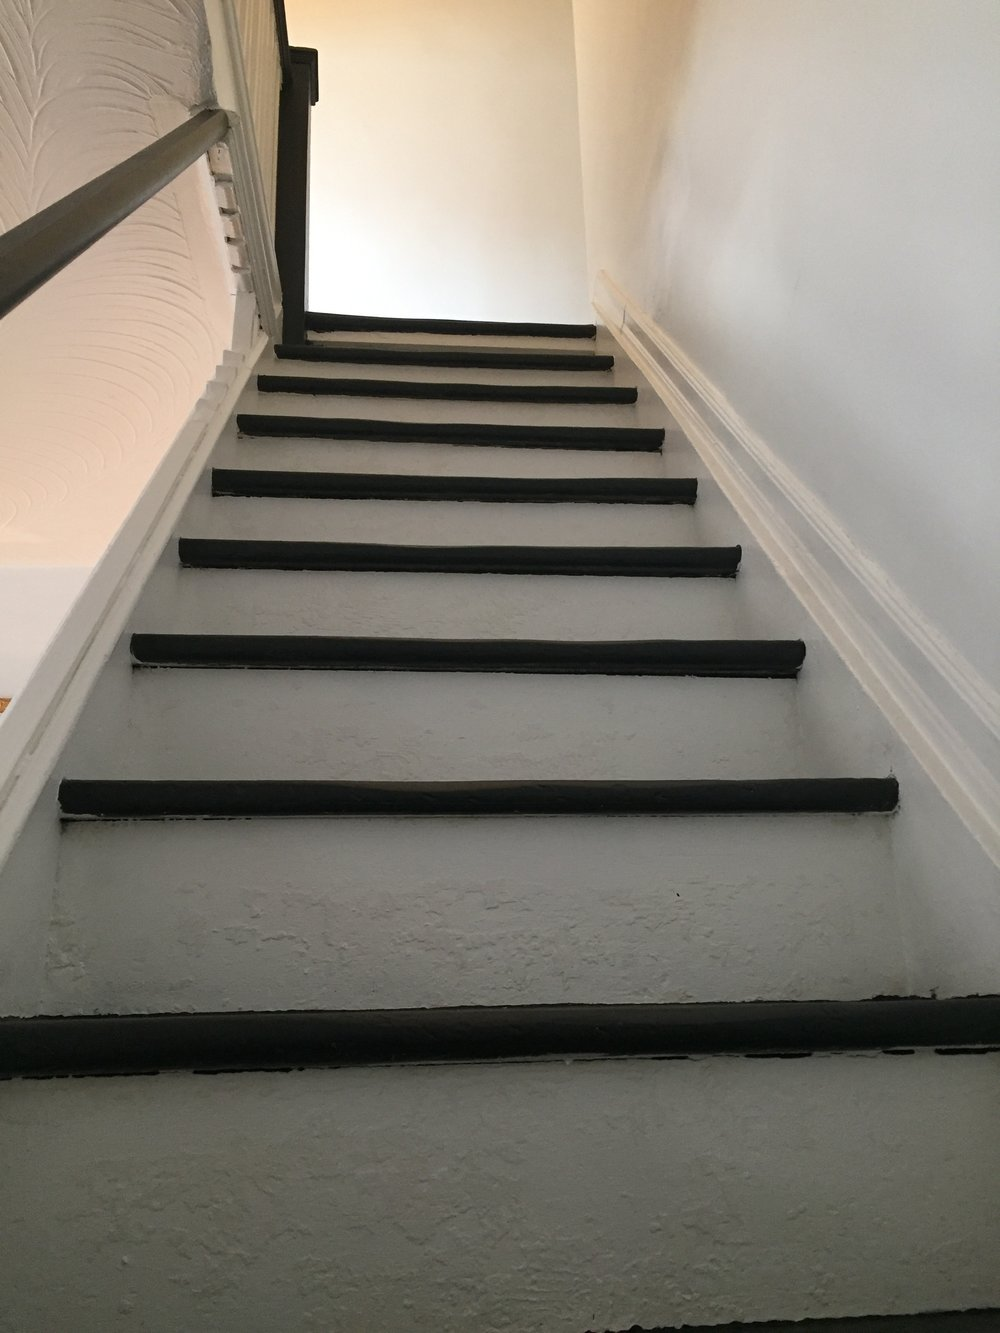 lesley-metcalfe-stairs-after-painted.JPG